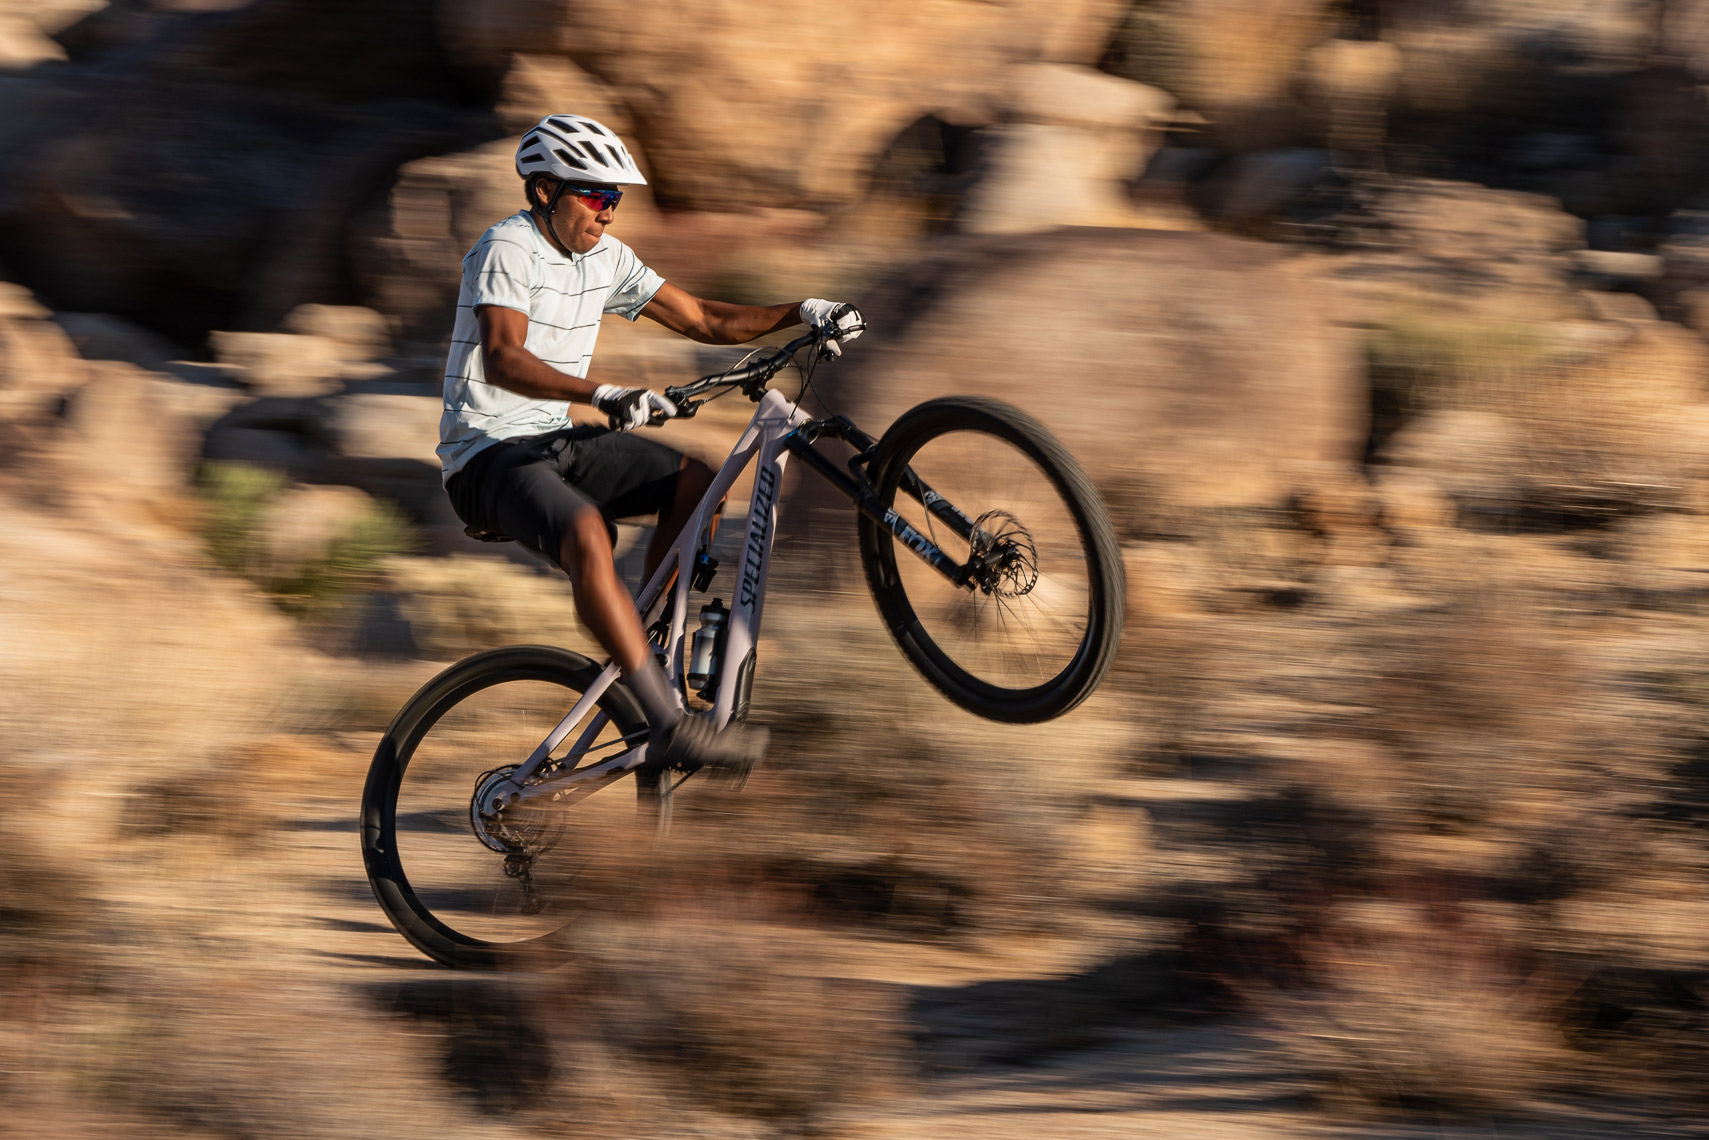 Specialized_S21_MTB_Clothing_Palm_Springs_VanWeelden-92